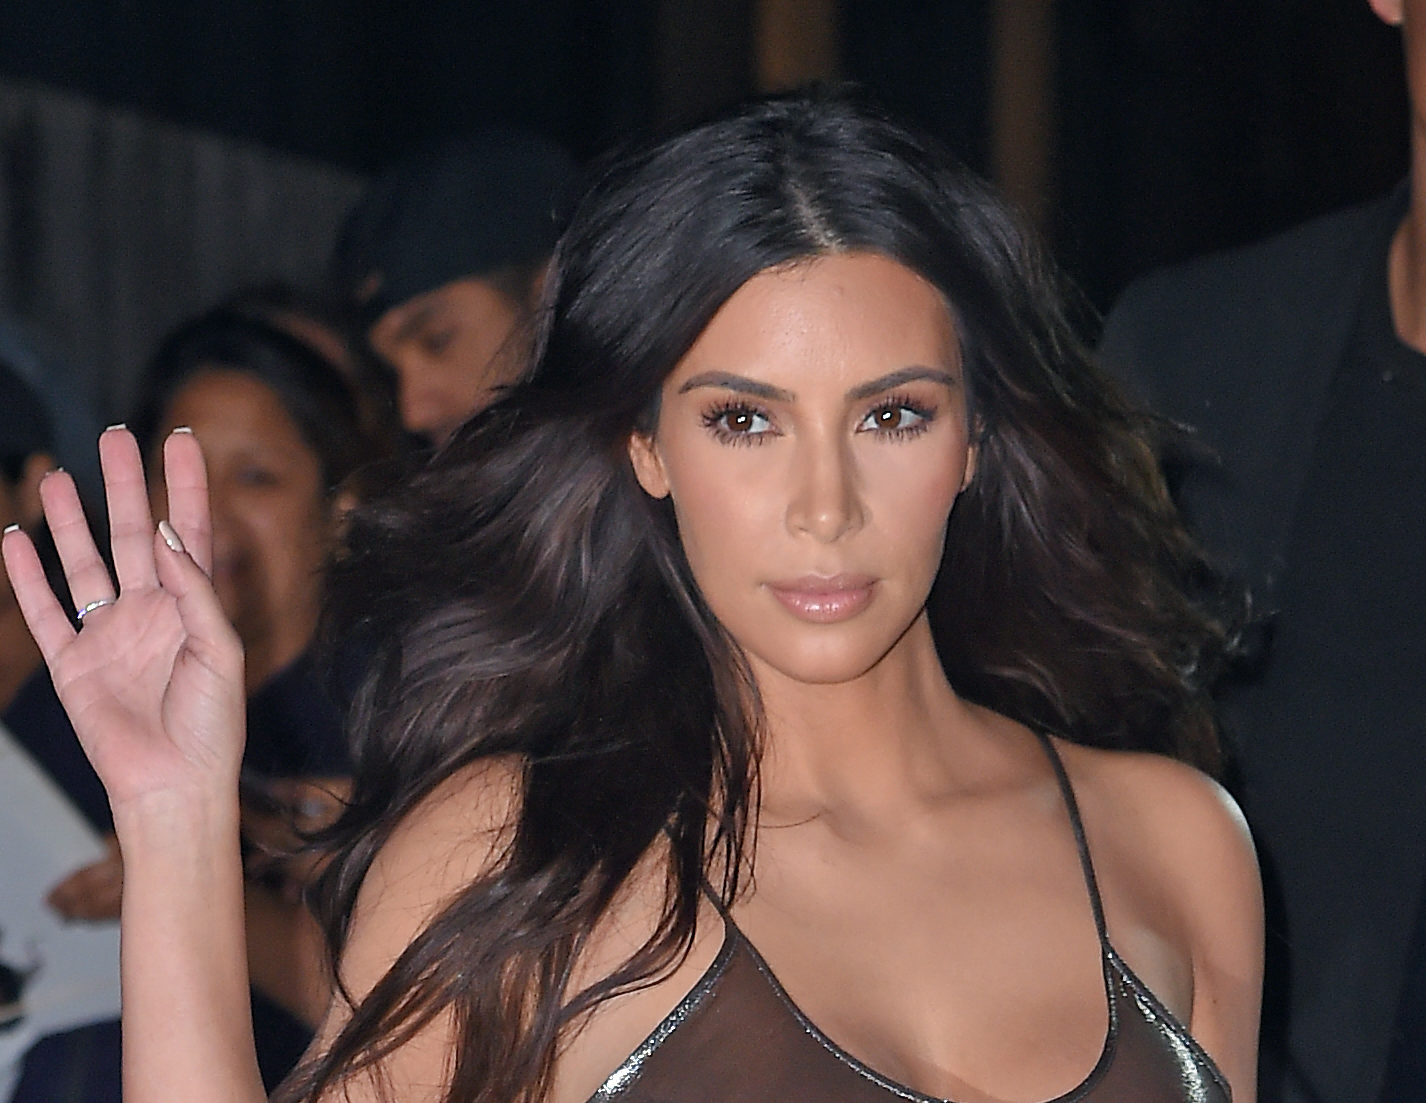 Nobody can stop talking about Kim Kardashian's sexy robot outfit, and we can see why